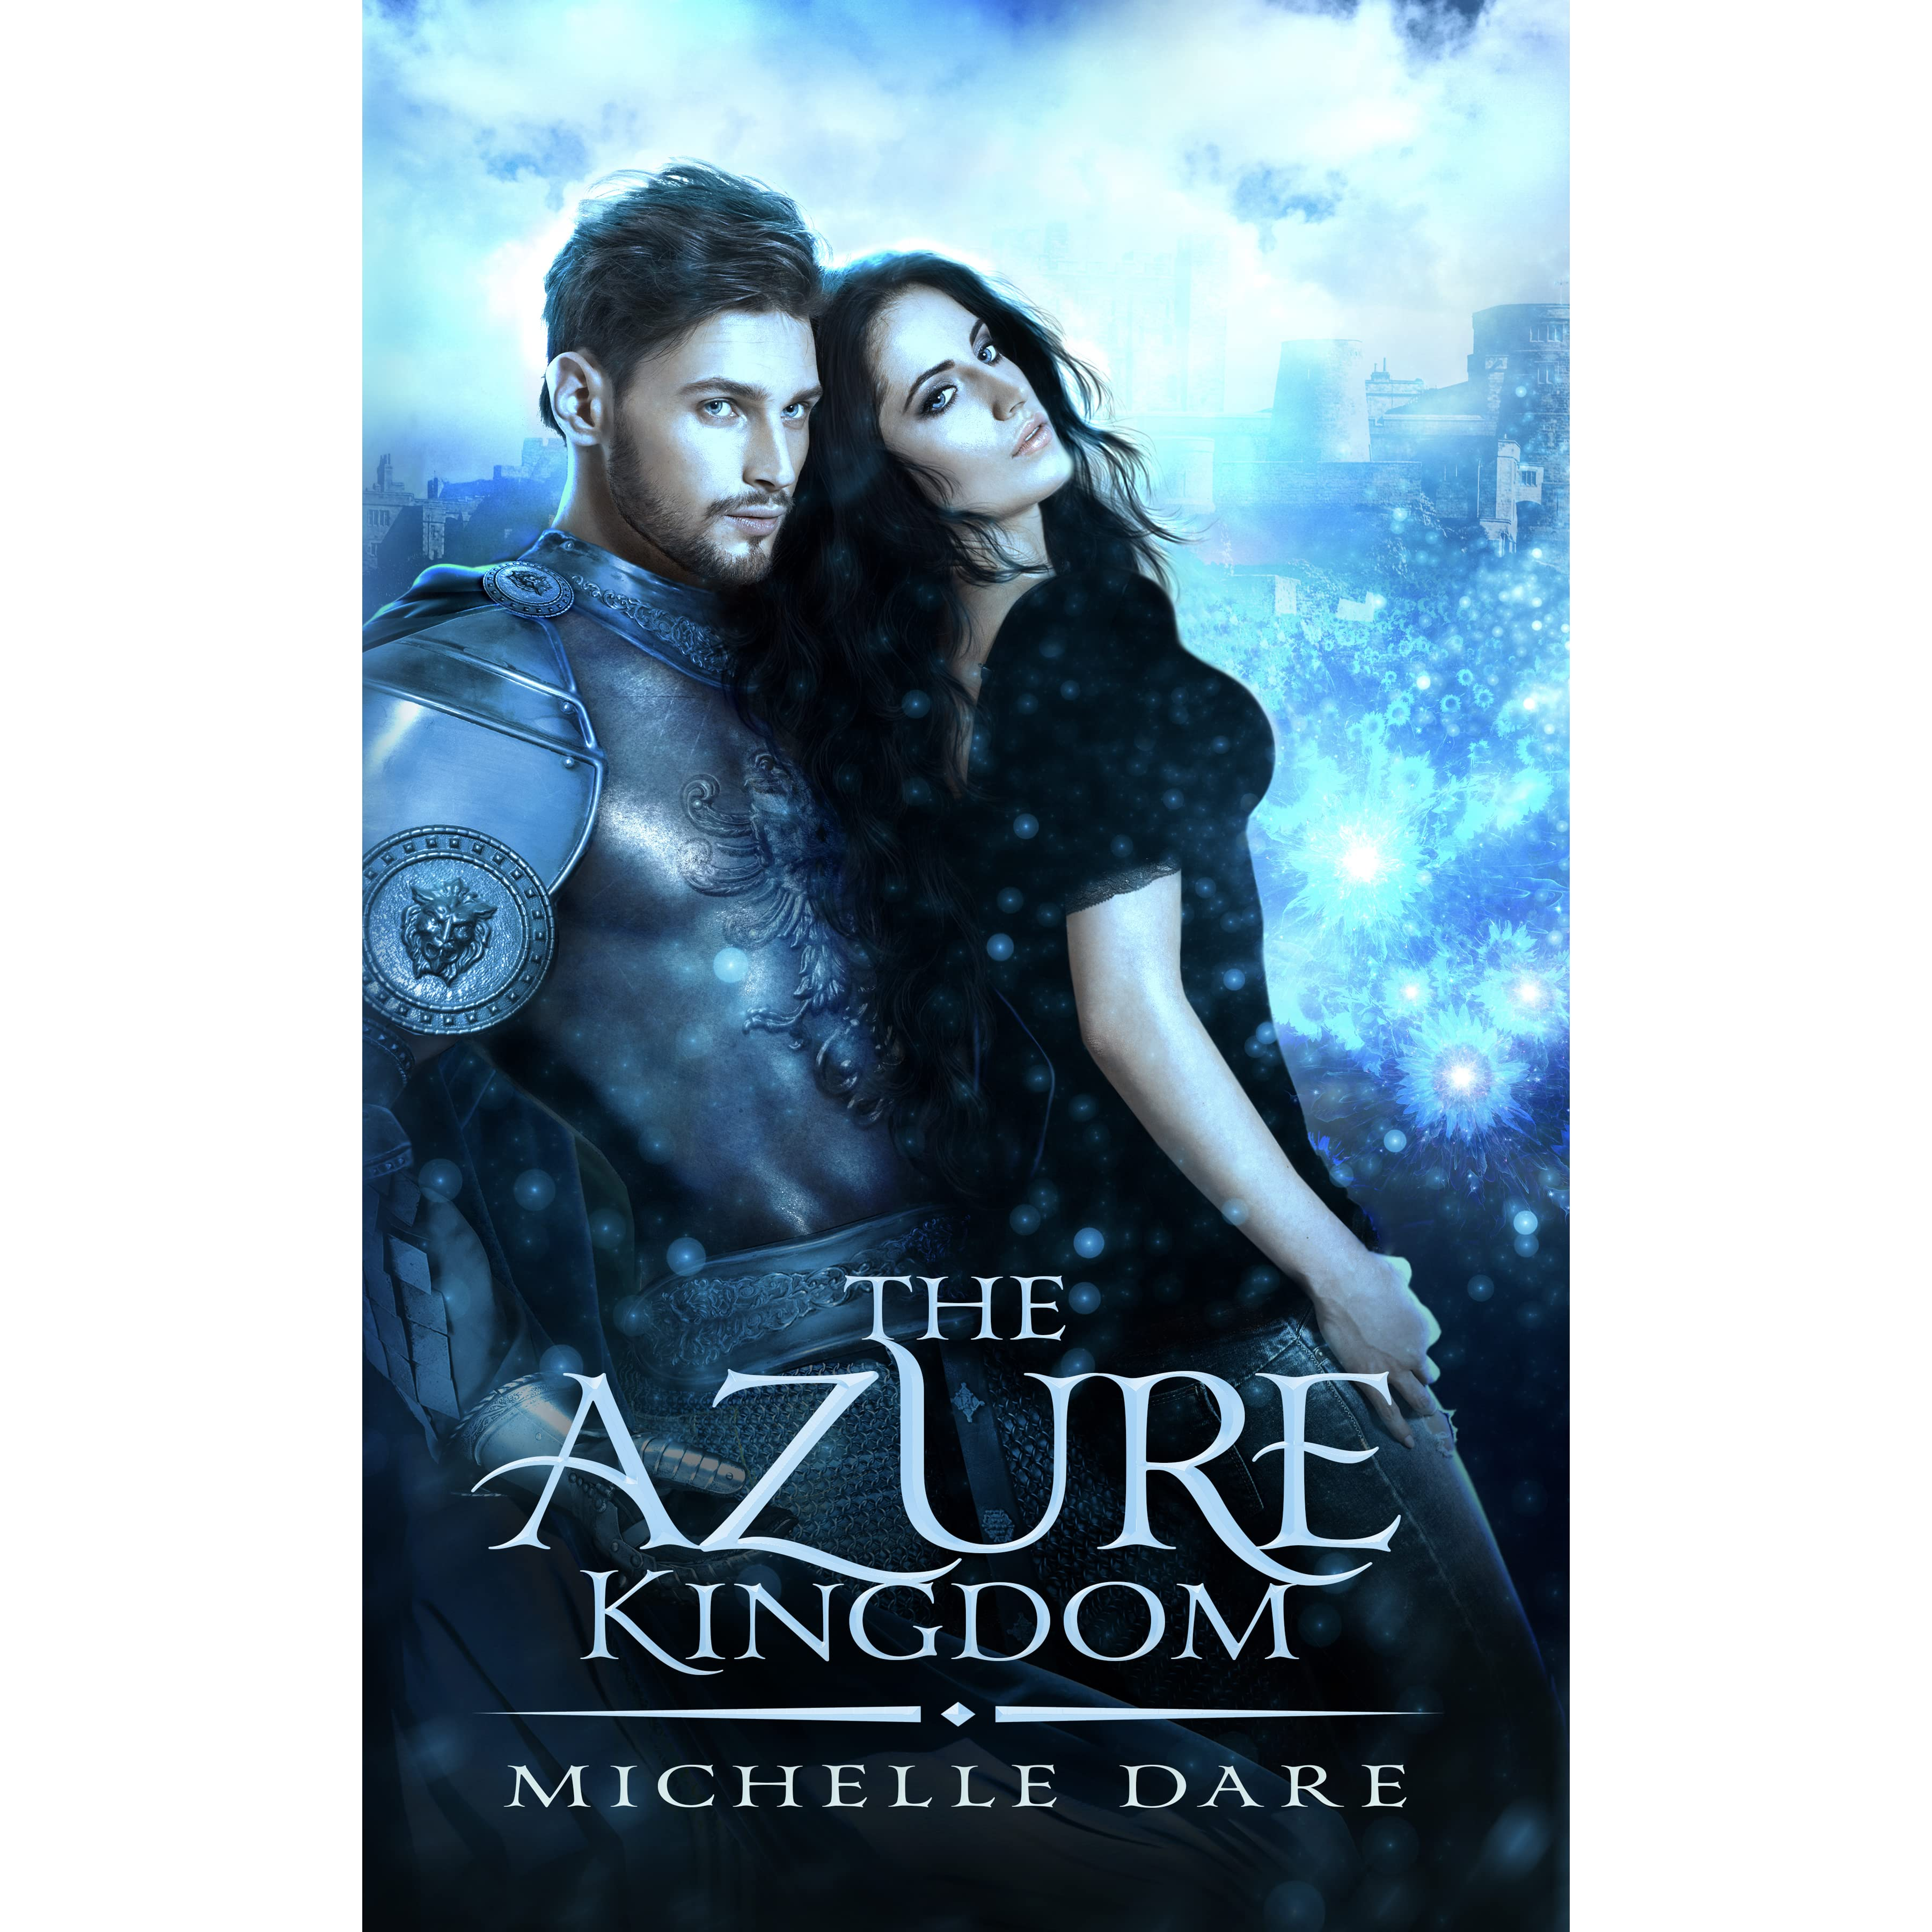 Kingdom Manga Goodreads: The Azure Kingdom (The Iridescent Realm, #1) By Michelle